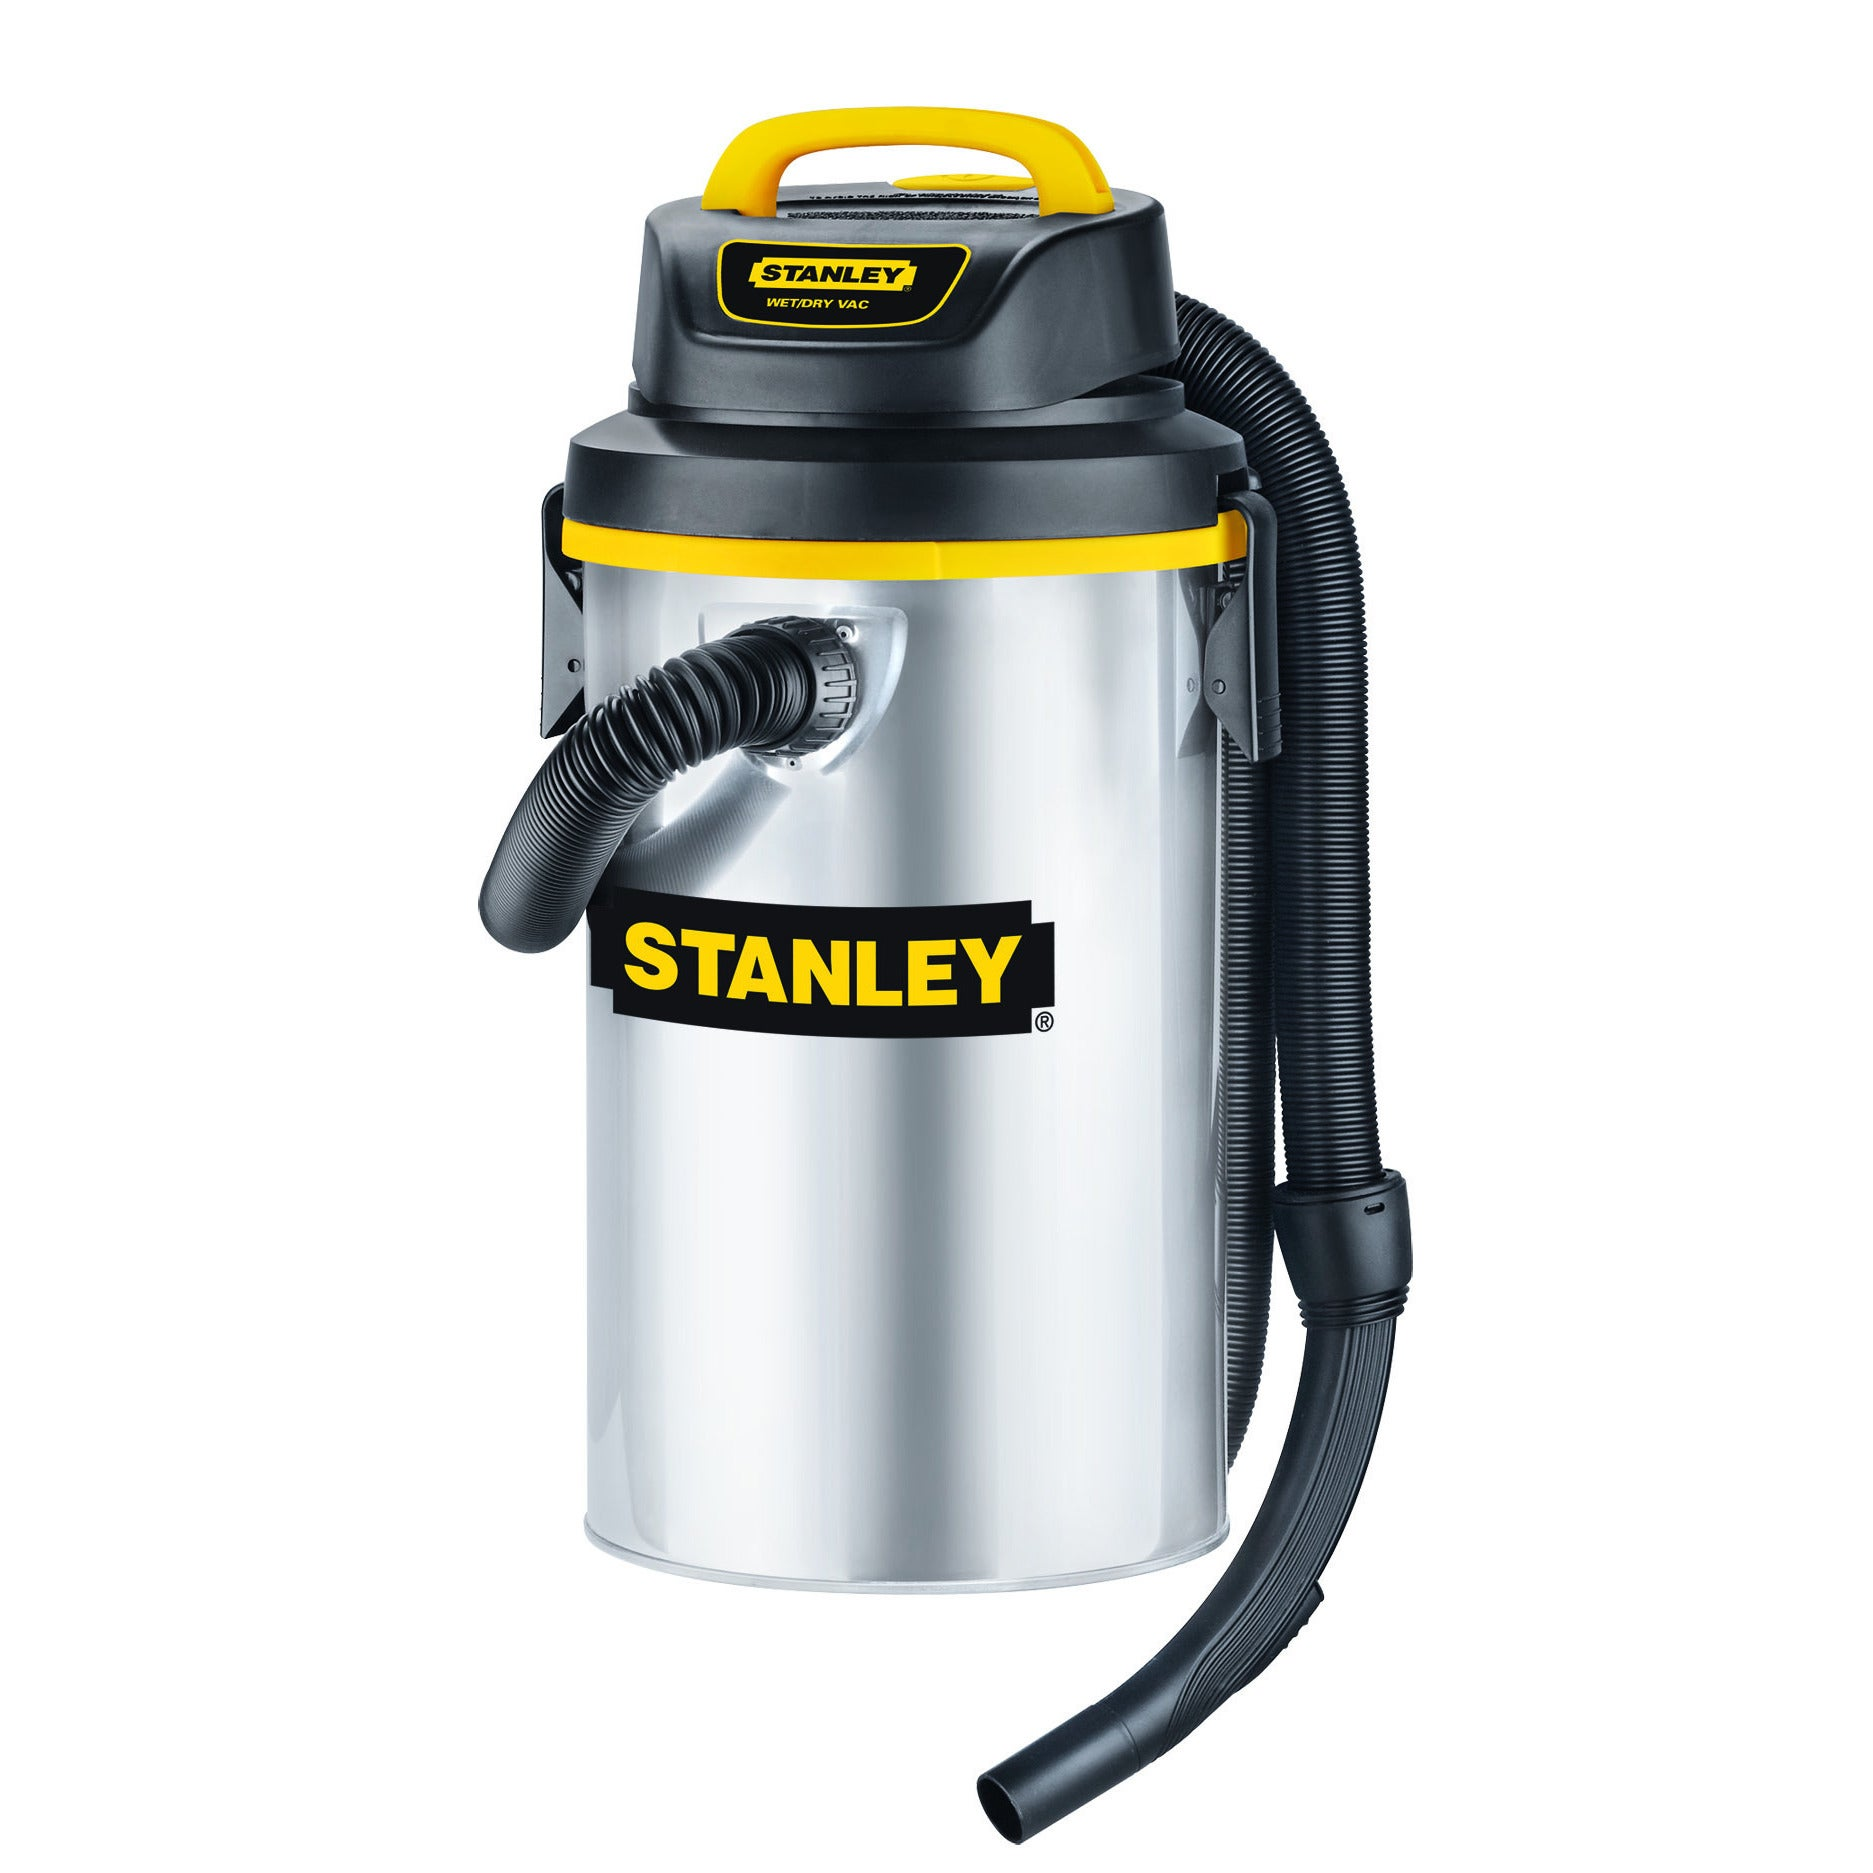 Stanley Wet and Dry Stainless Steel Vacuum at Sears.com